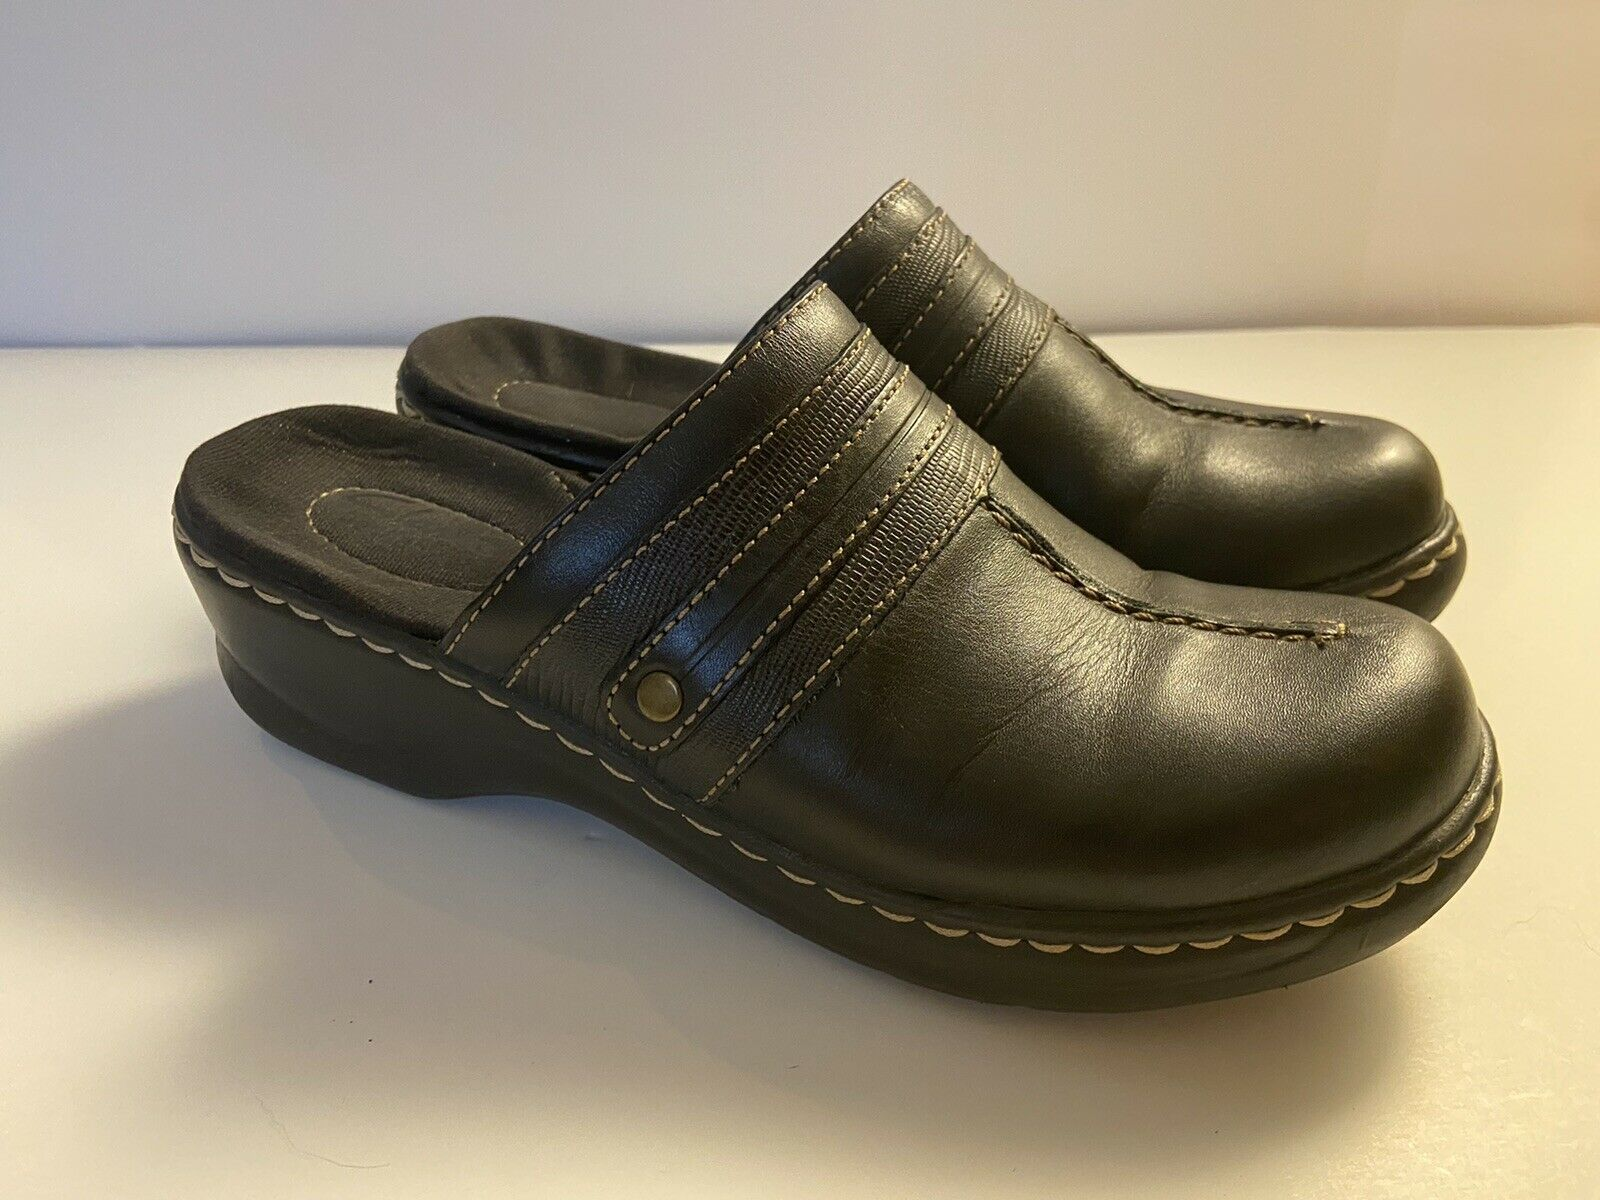 CLARKS DARK LEATHER LOAFERS SLIP ONS CLOG COMFORT SHOES WOMENS SZ 6.5M - NURSE